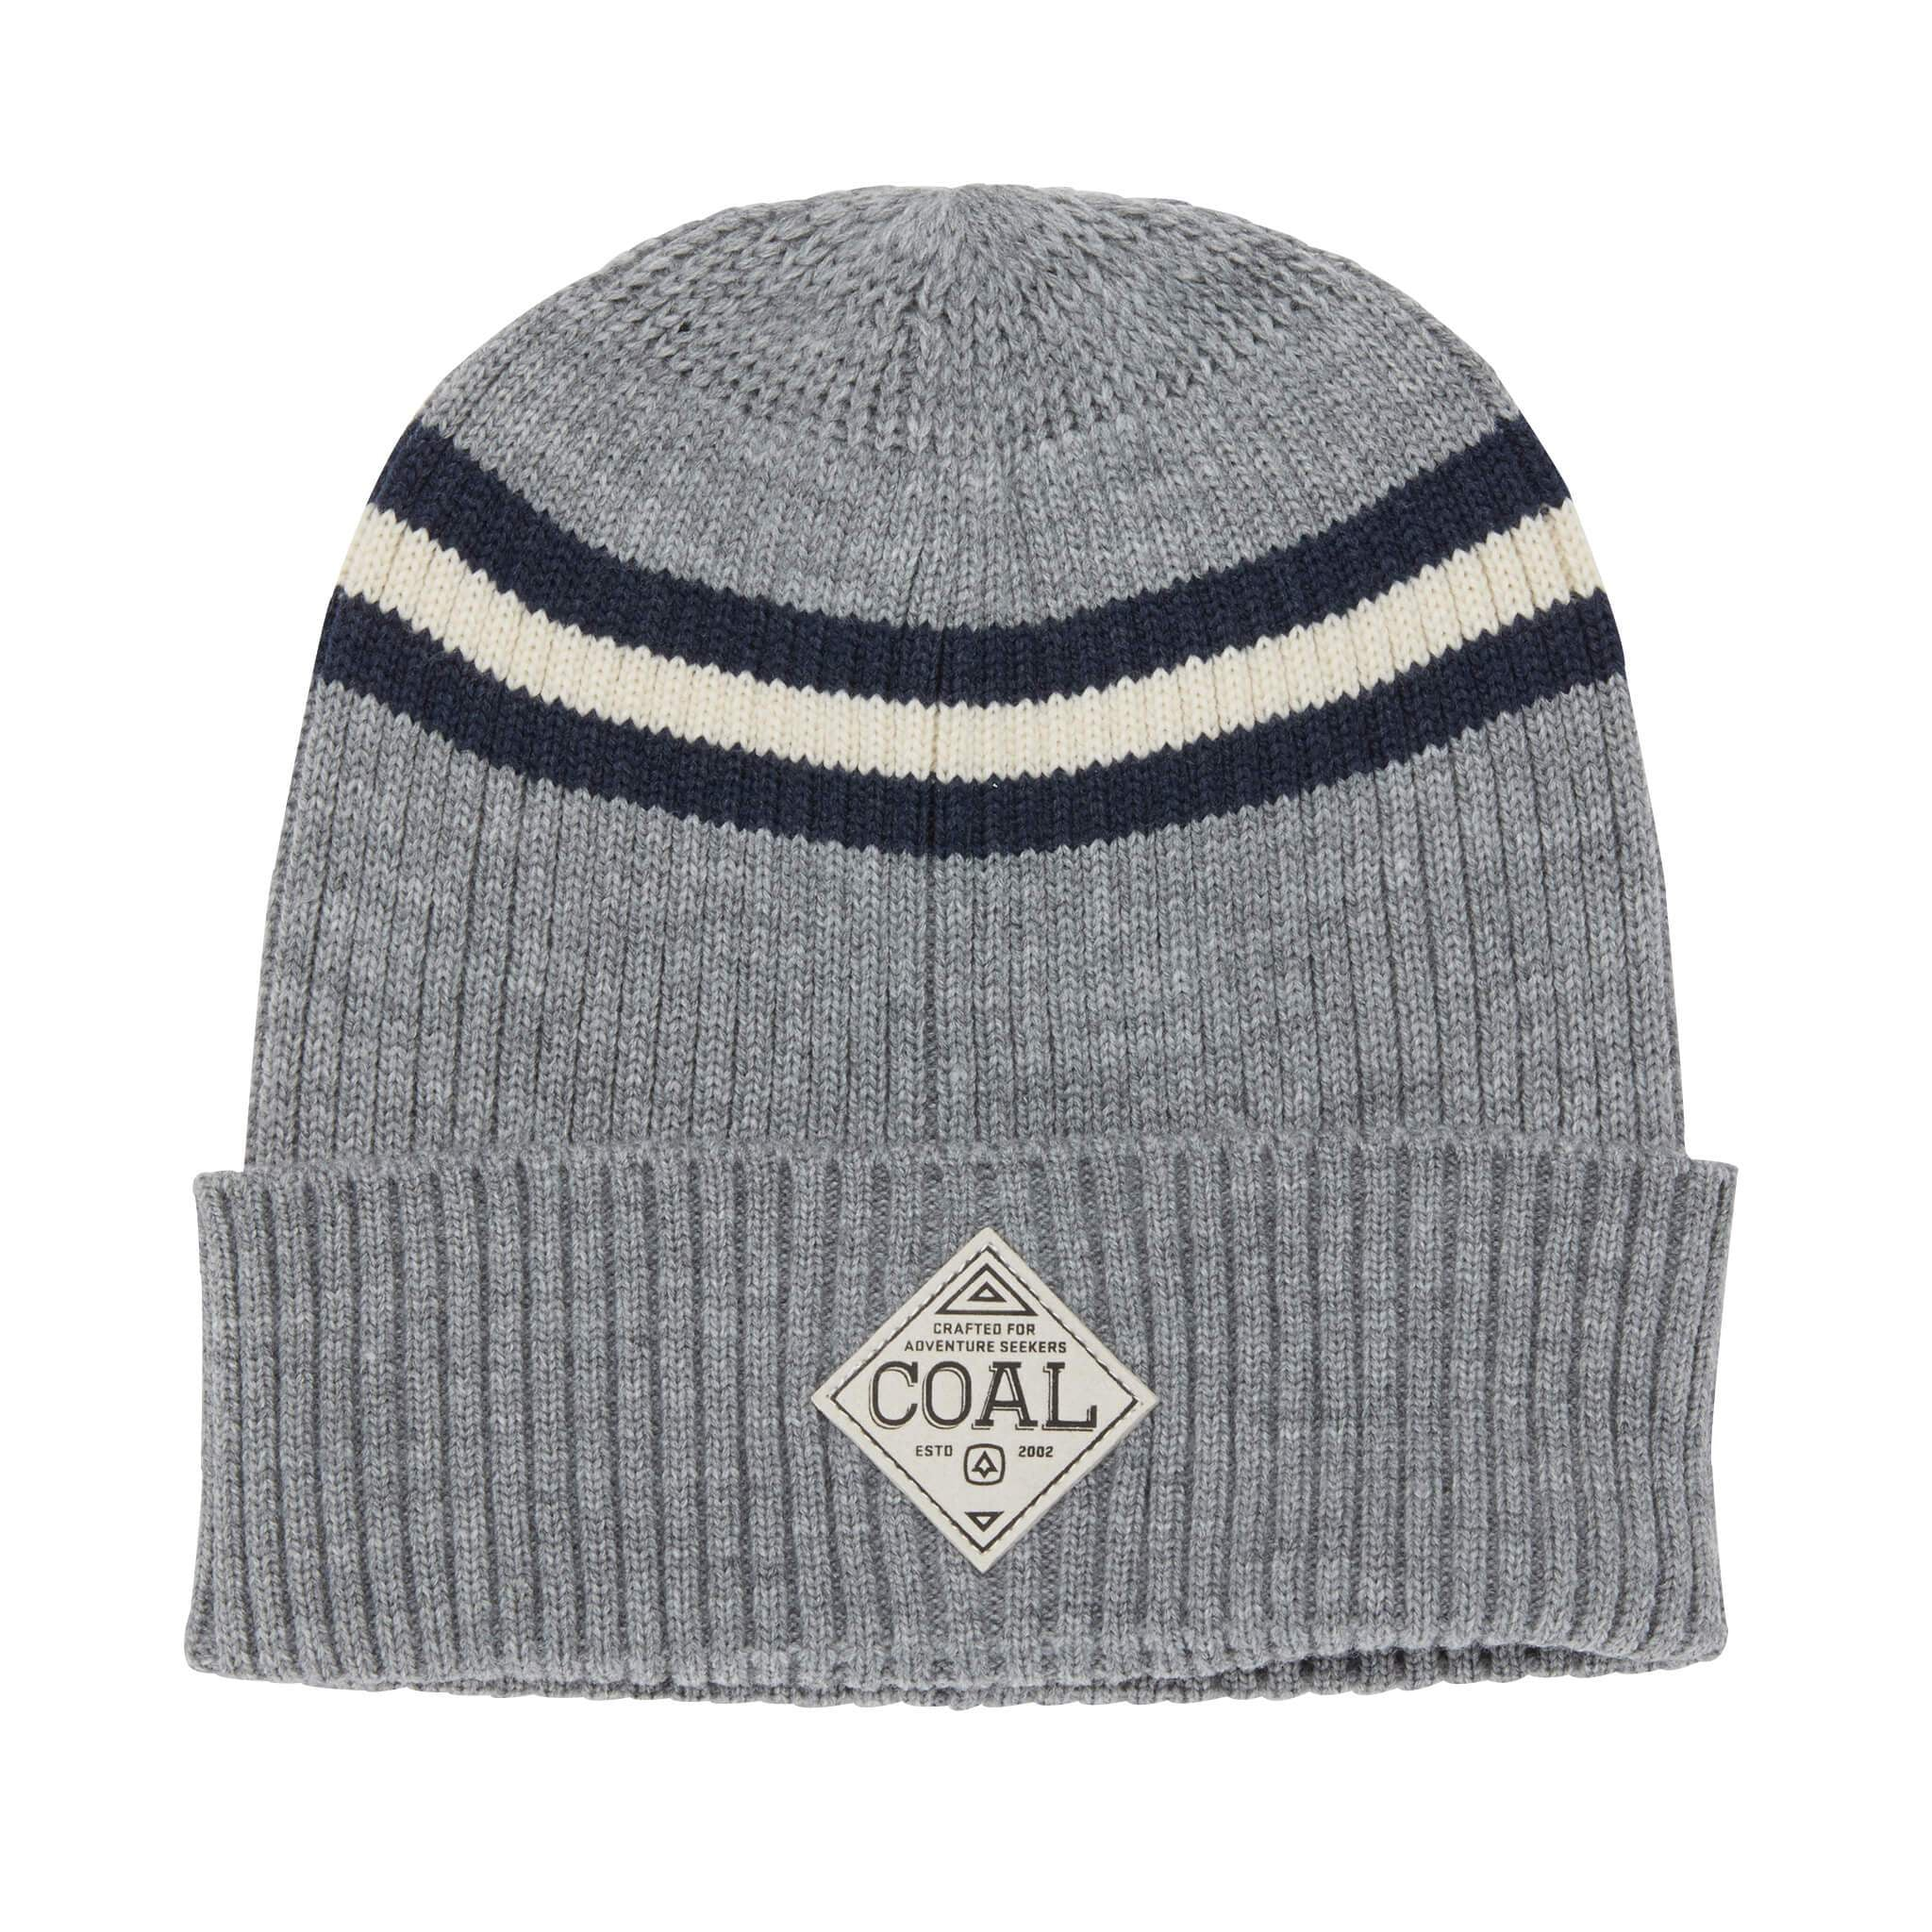 Coal Paxton Striped Rib Knit Beanie